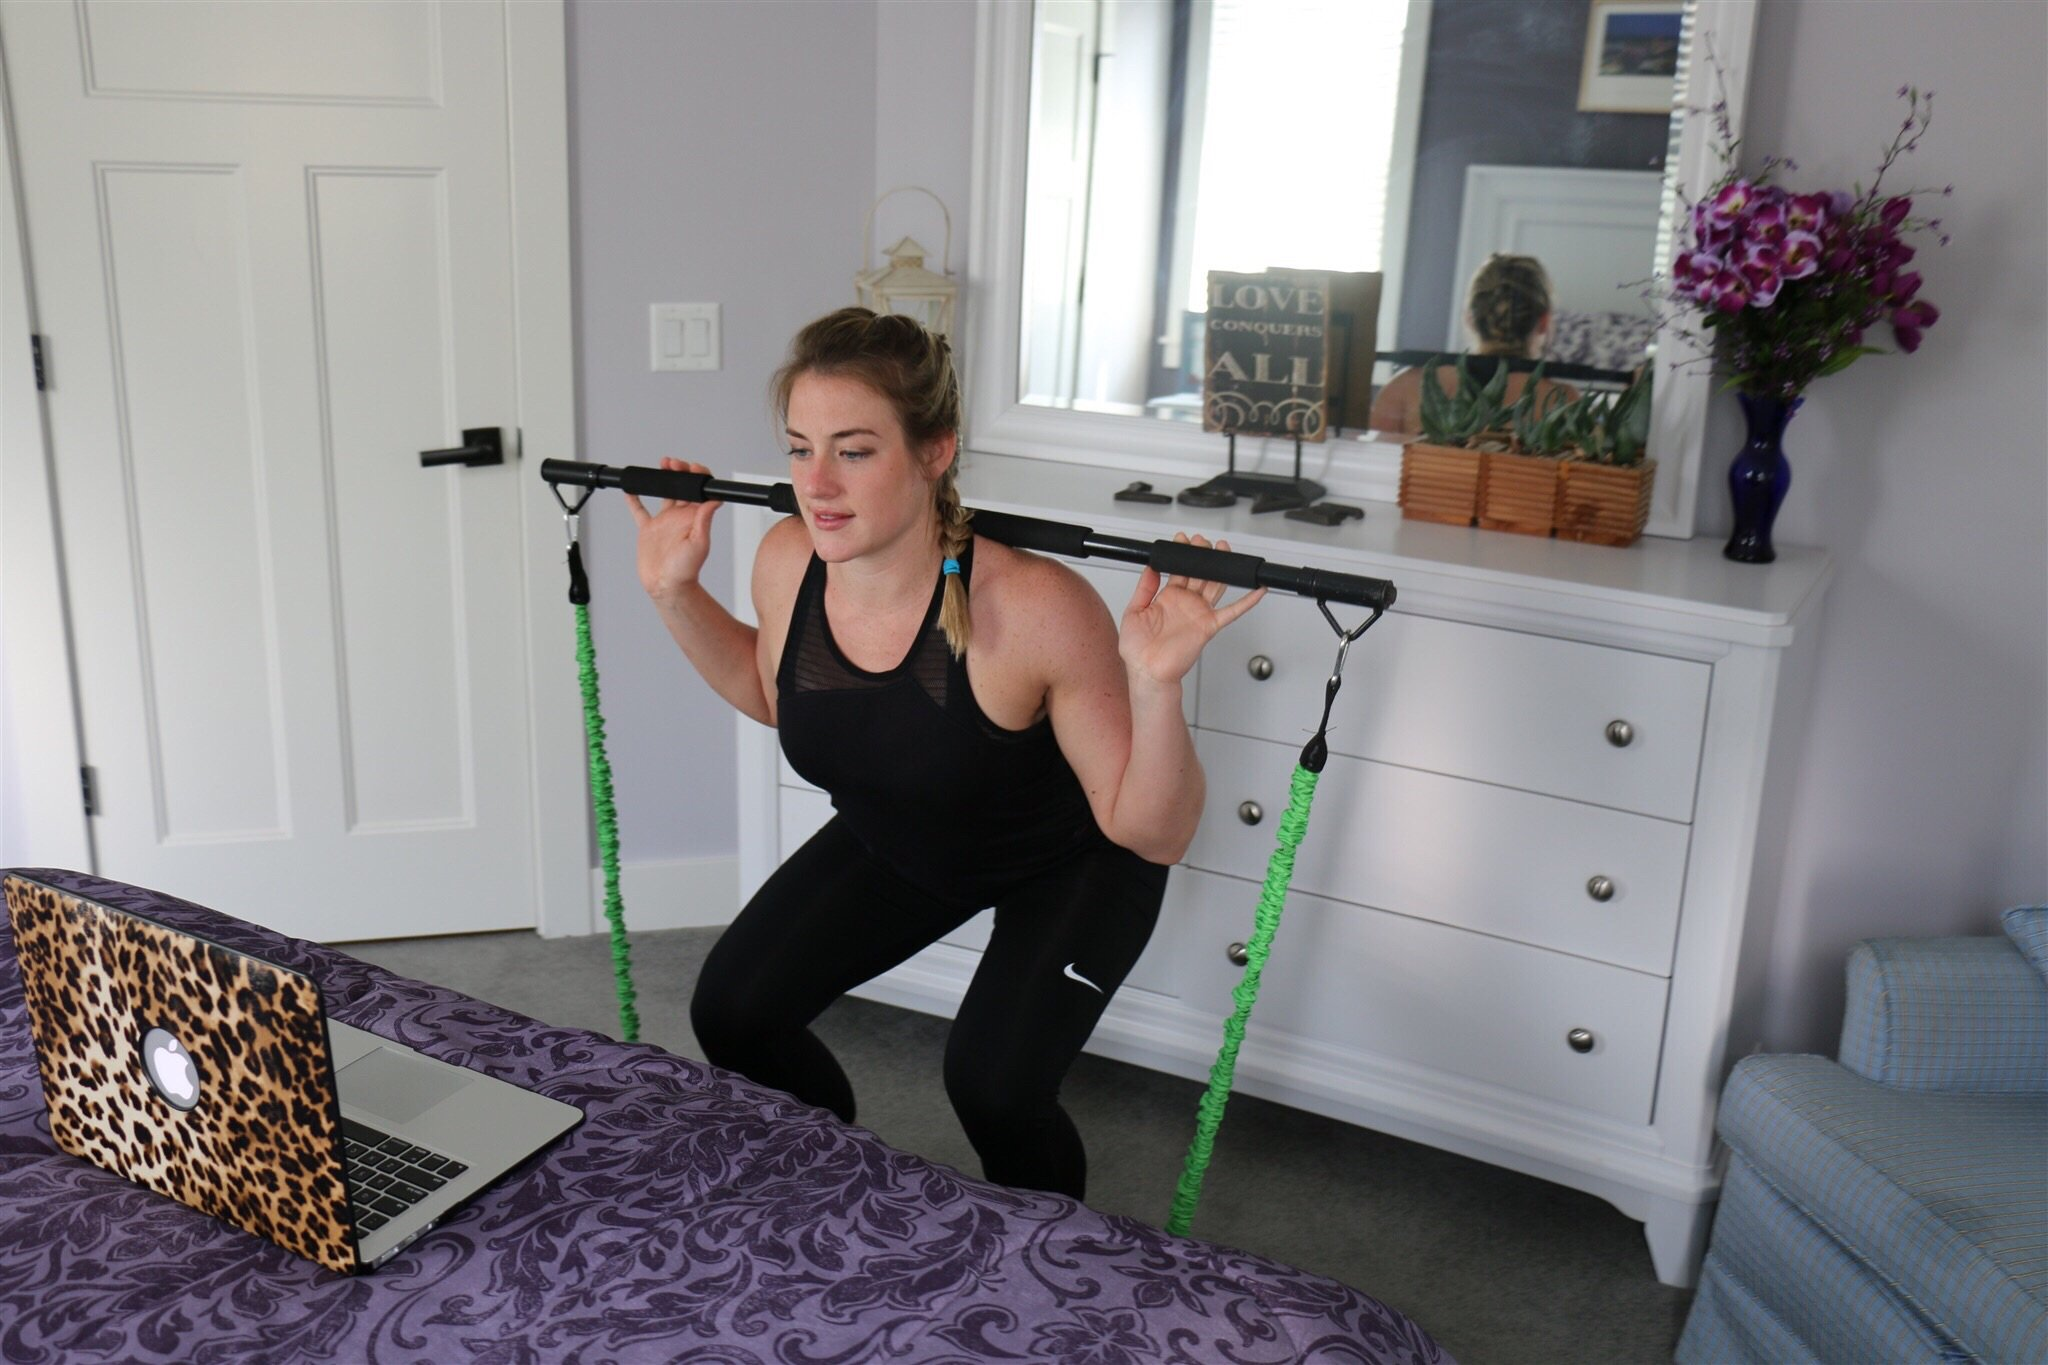 BodyBoss Home Gym 2.0 - Portable Gym Home Workout Package + Extra Set of Resistance Bands (4) - for Full Body Strength Training Workouts at Home or Anywhere You Take it (Green) by BodyBoss (Image #7)